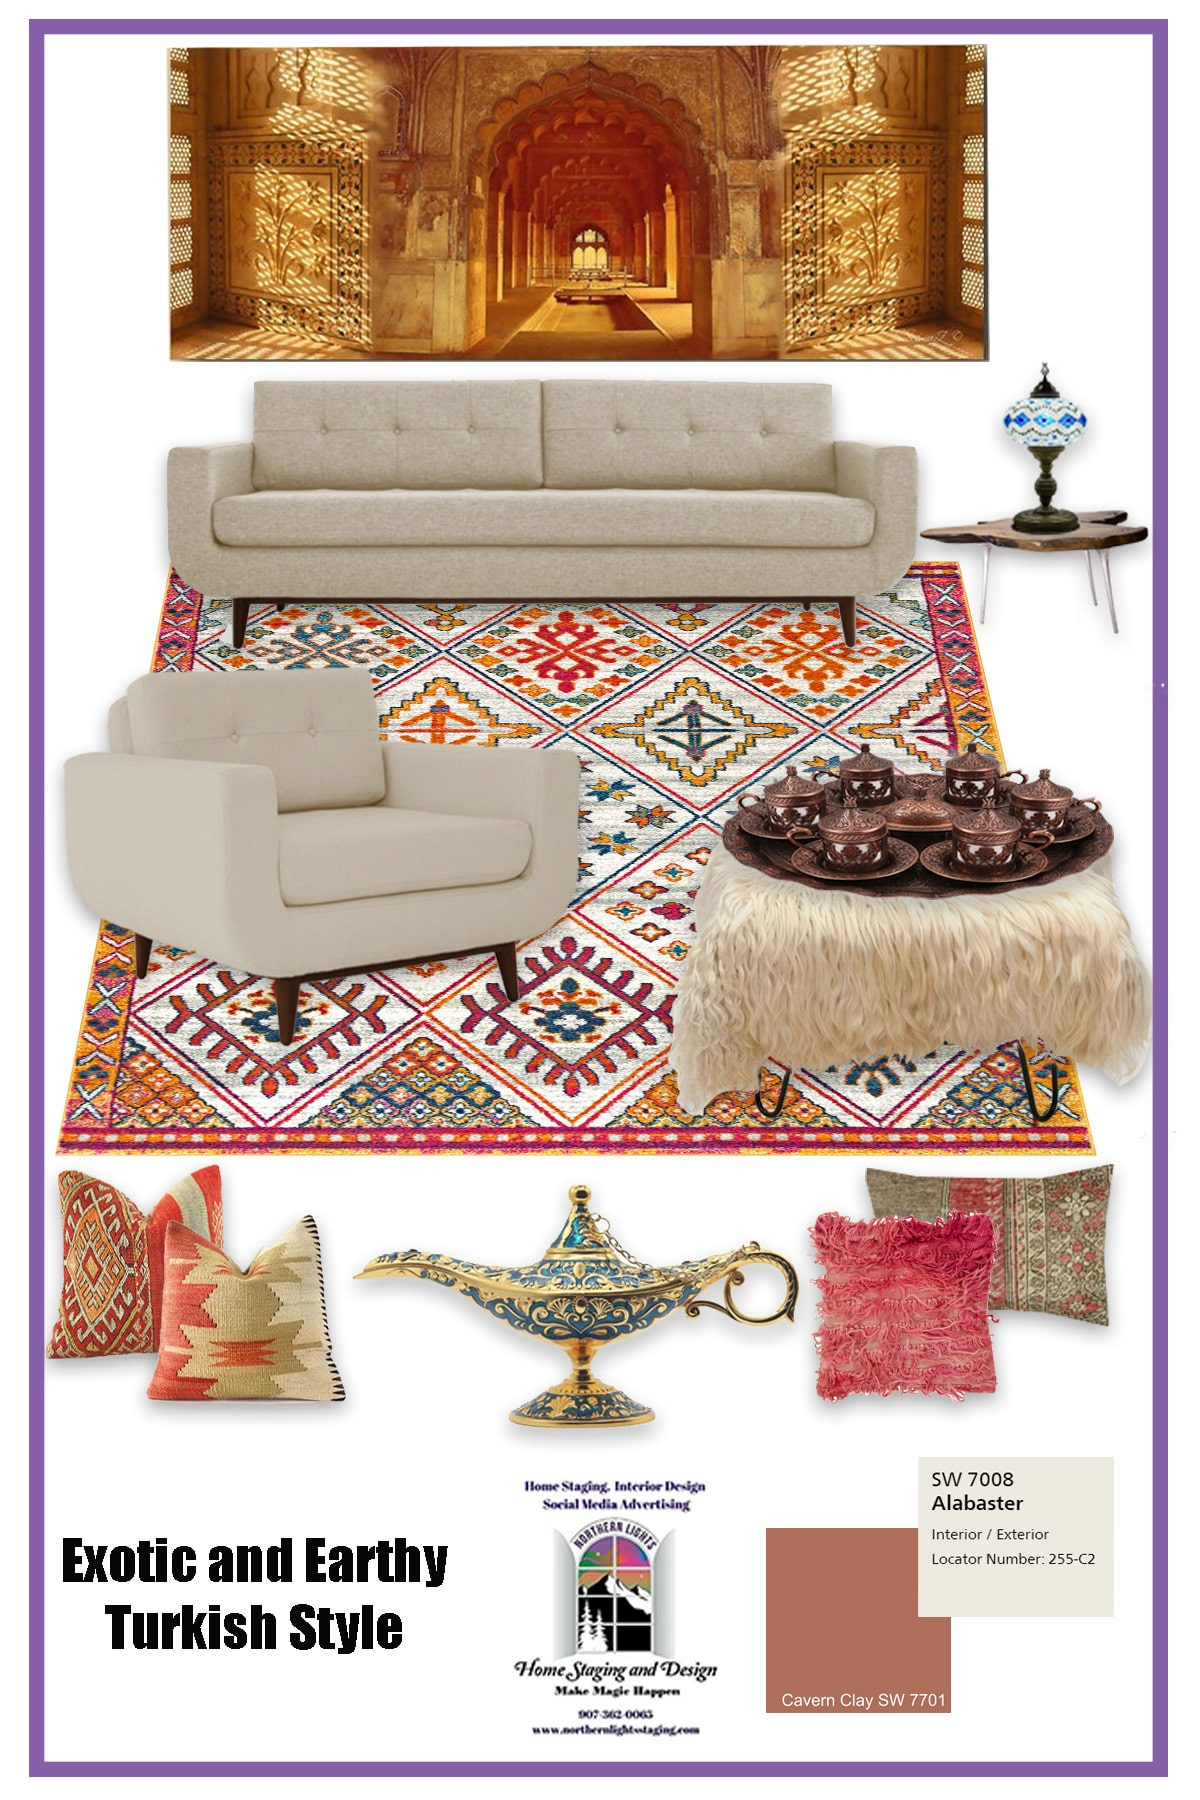 Turkish style living room moodboard using Cavern Clay. EDesign by Northern Lights Home Staging and Design.#color #colorconsulting #Interiordesign #edesign #bohemian #interiordecorating #paint #colors #homestyling #homedecor #homedesign #moderndecor #colorfuldecor #interiordecor #beautifulhomes #homeinspo #decorinspo #homeinspo #decorating #interiorstyle #homestyle #colorstrategy #colorconsultant #interiorpaintcolors #exteriorpaintcolors #paintingtips #colortips #interiorcolor #colorfuldecor #bohemian #global #99664